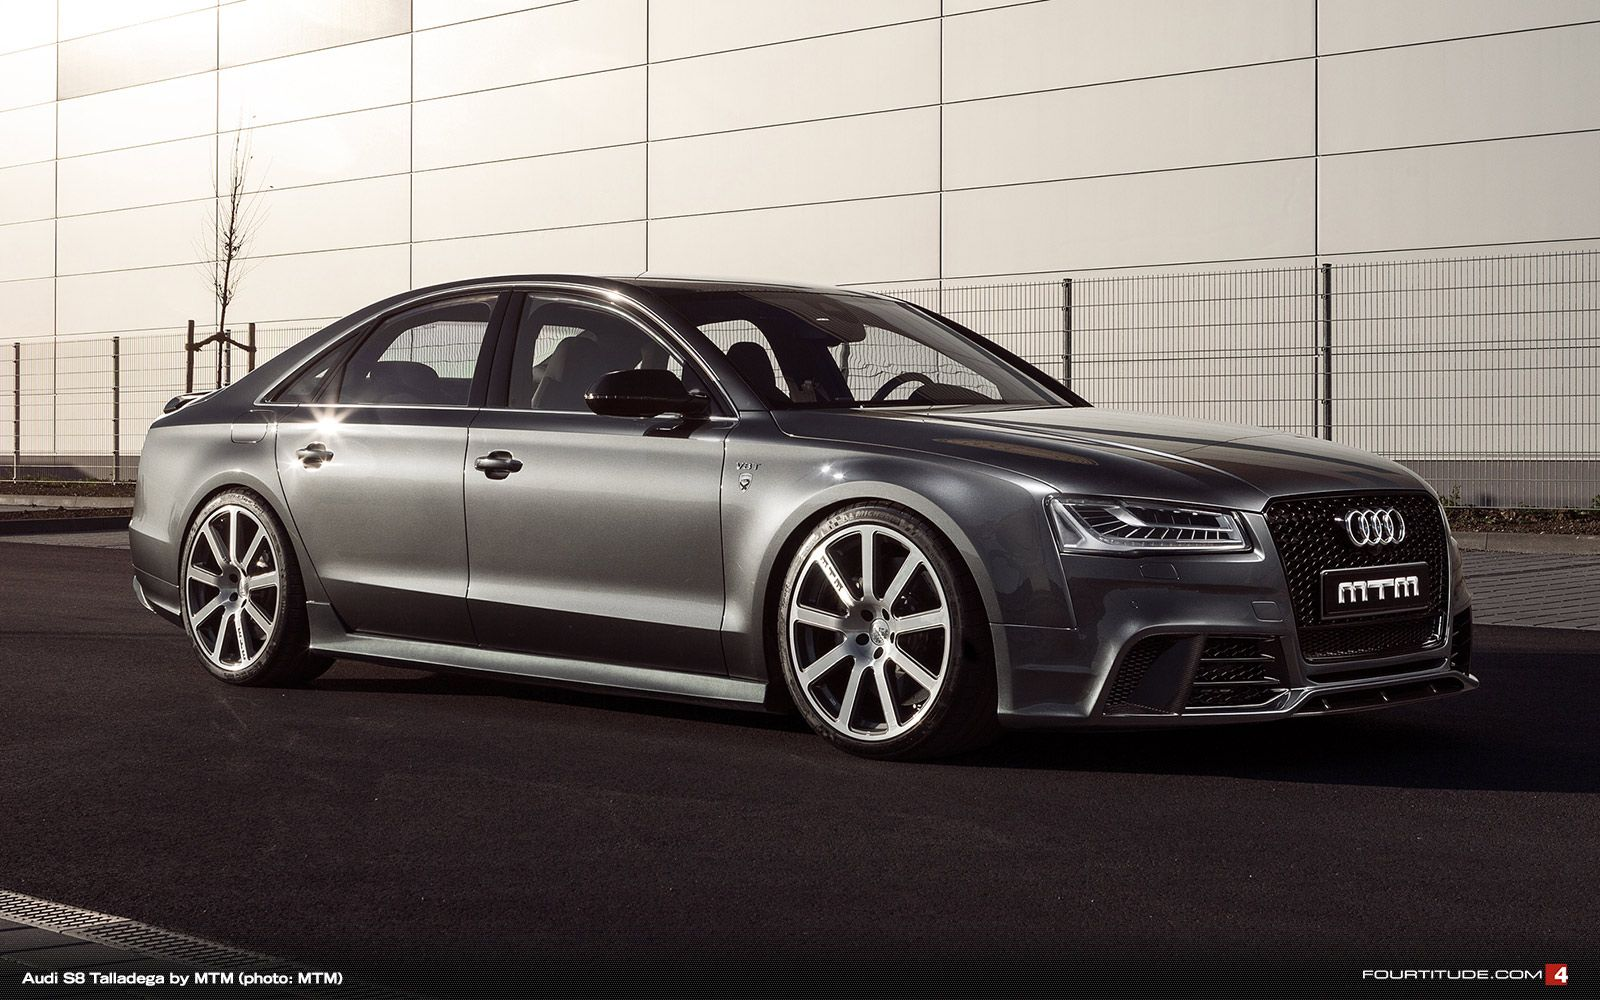 Mtm Teases Audi Rs8 With New S8 Talladega Build Audihuntvalley Quattro